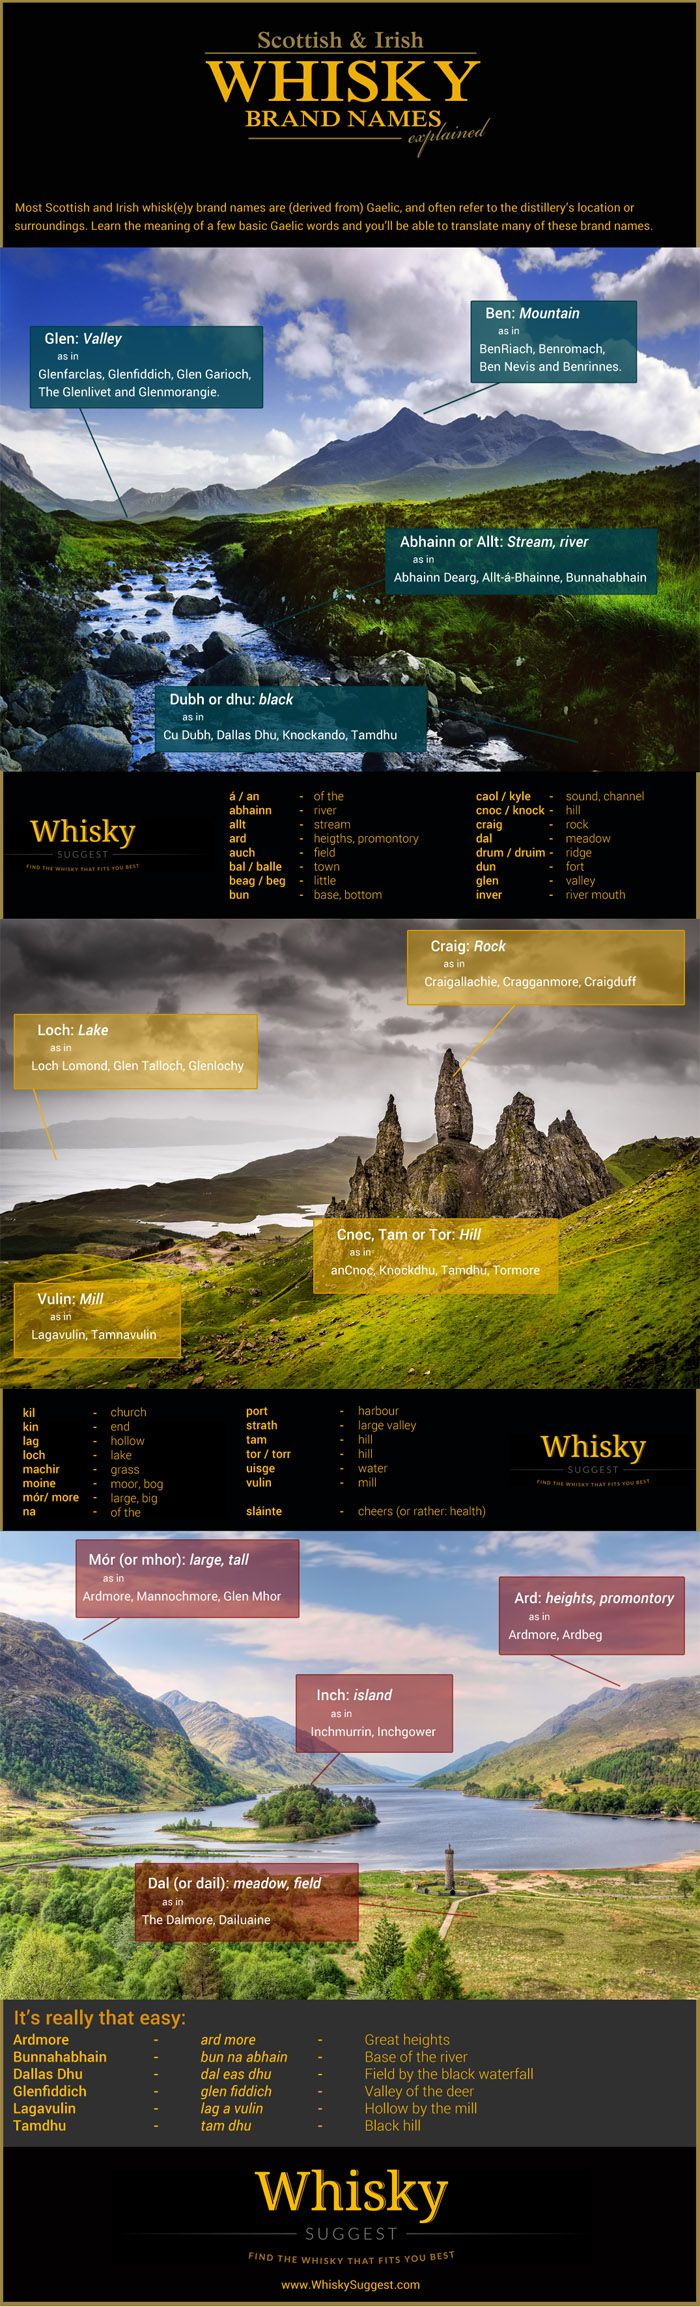 whisky-brands-infographic-700